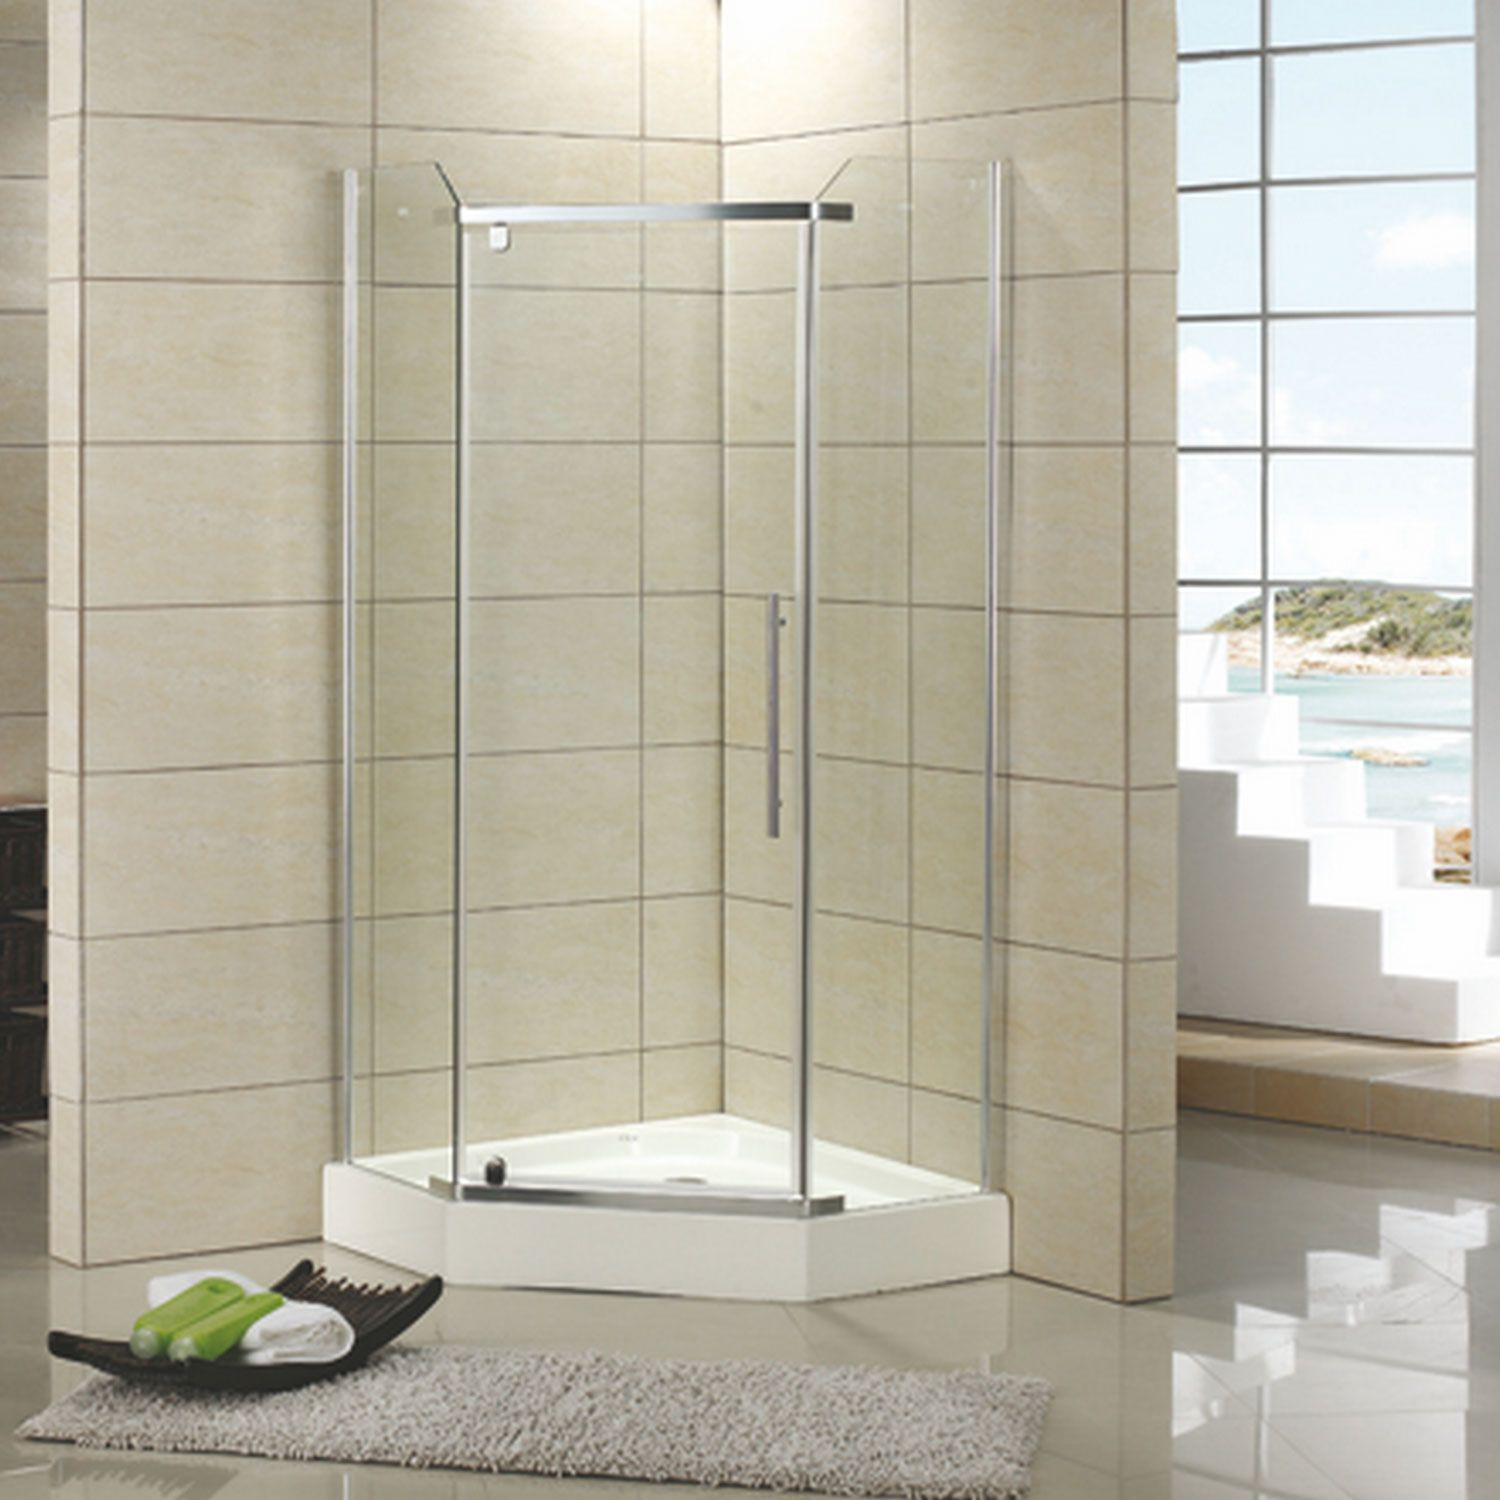 42 X 42 Walters Corner Shower Enclosure With Tray Brushed Nickel Corner Shower Enclosures Corner Shower Small Bathroom With Shower